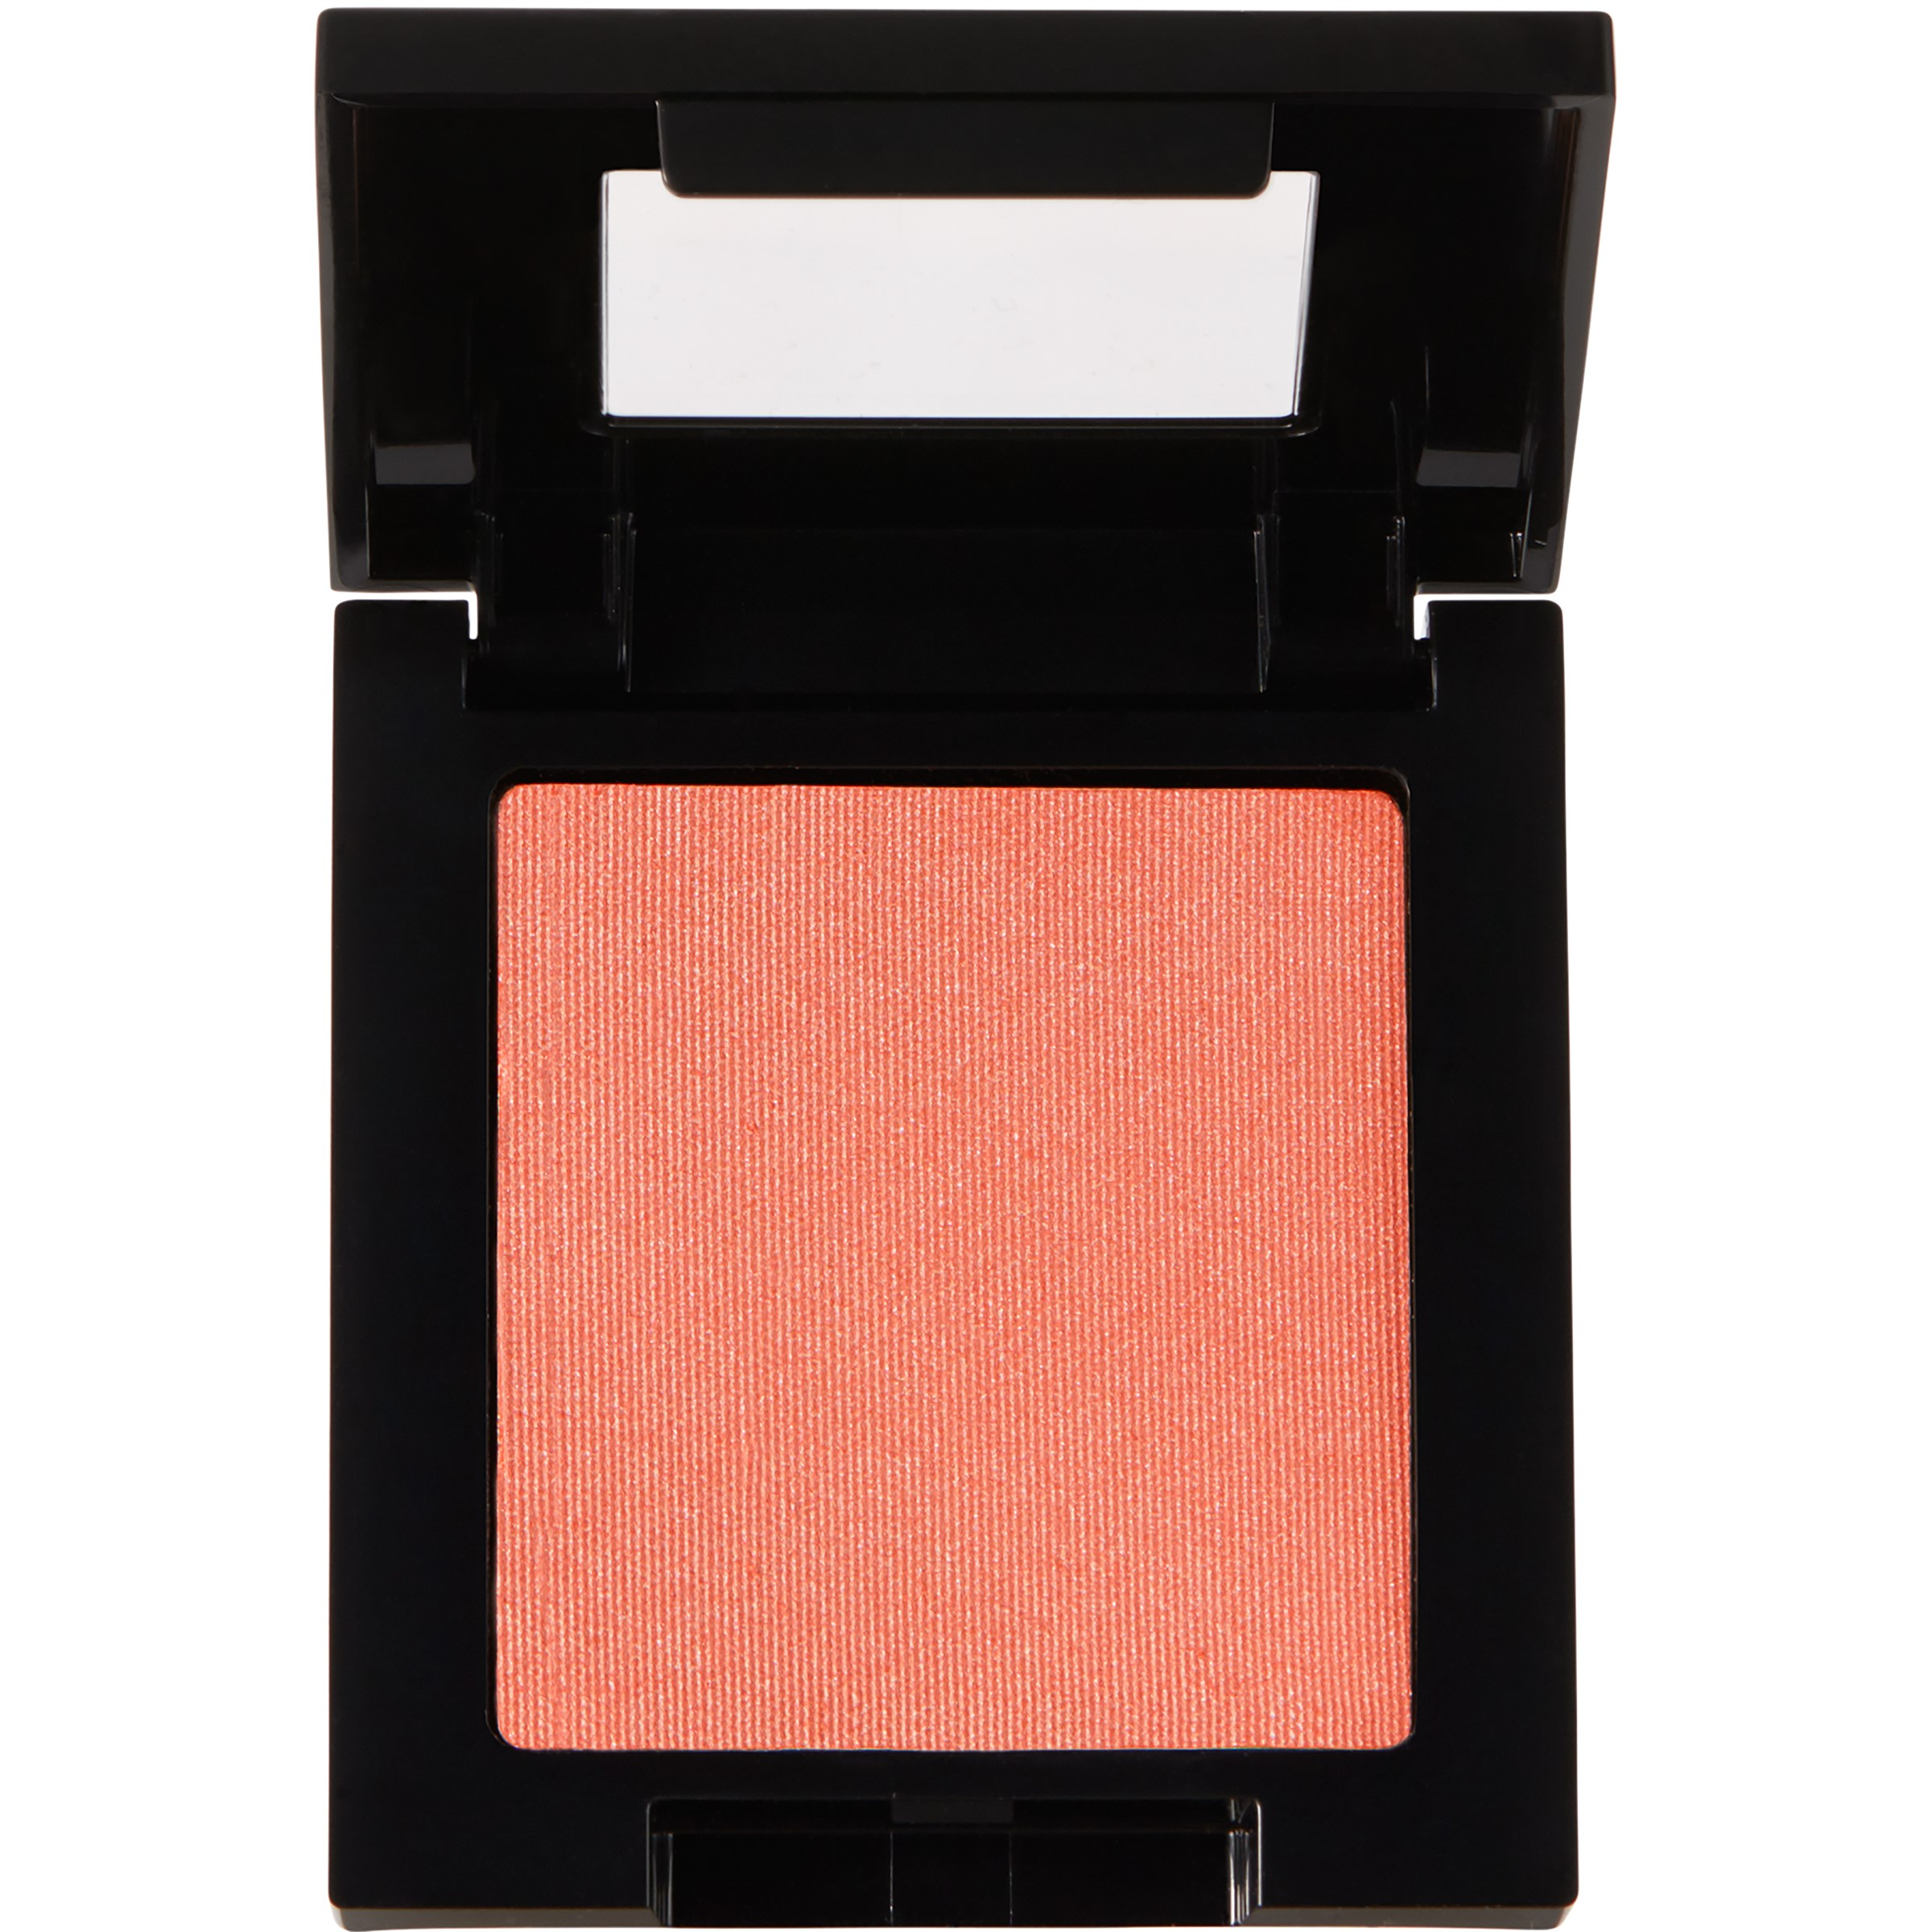 Maybelline New York Fit Me Blush, Peach